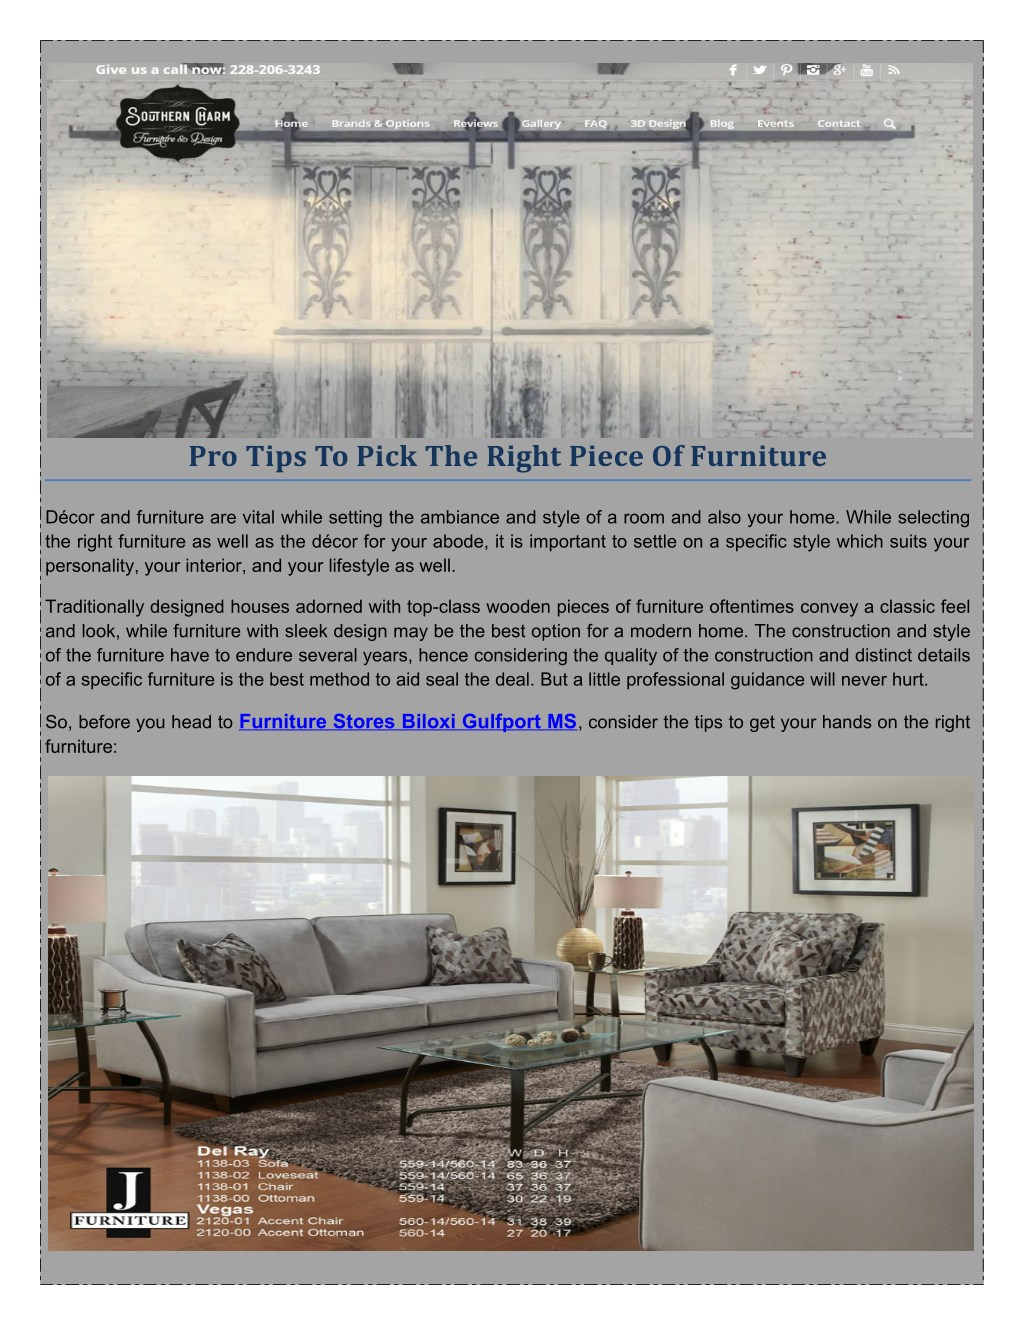 Ppt Southern Charm Furniture Design Offers The Best To